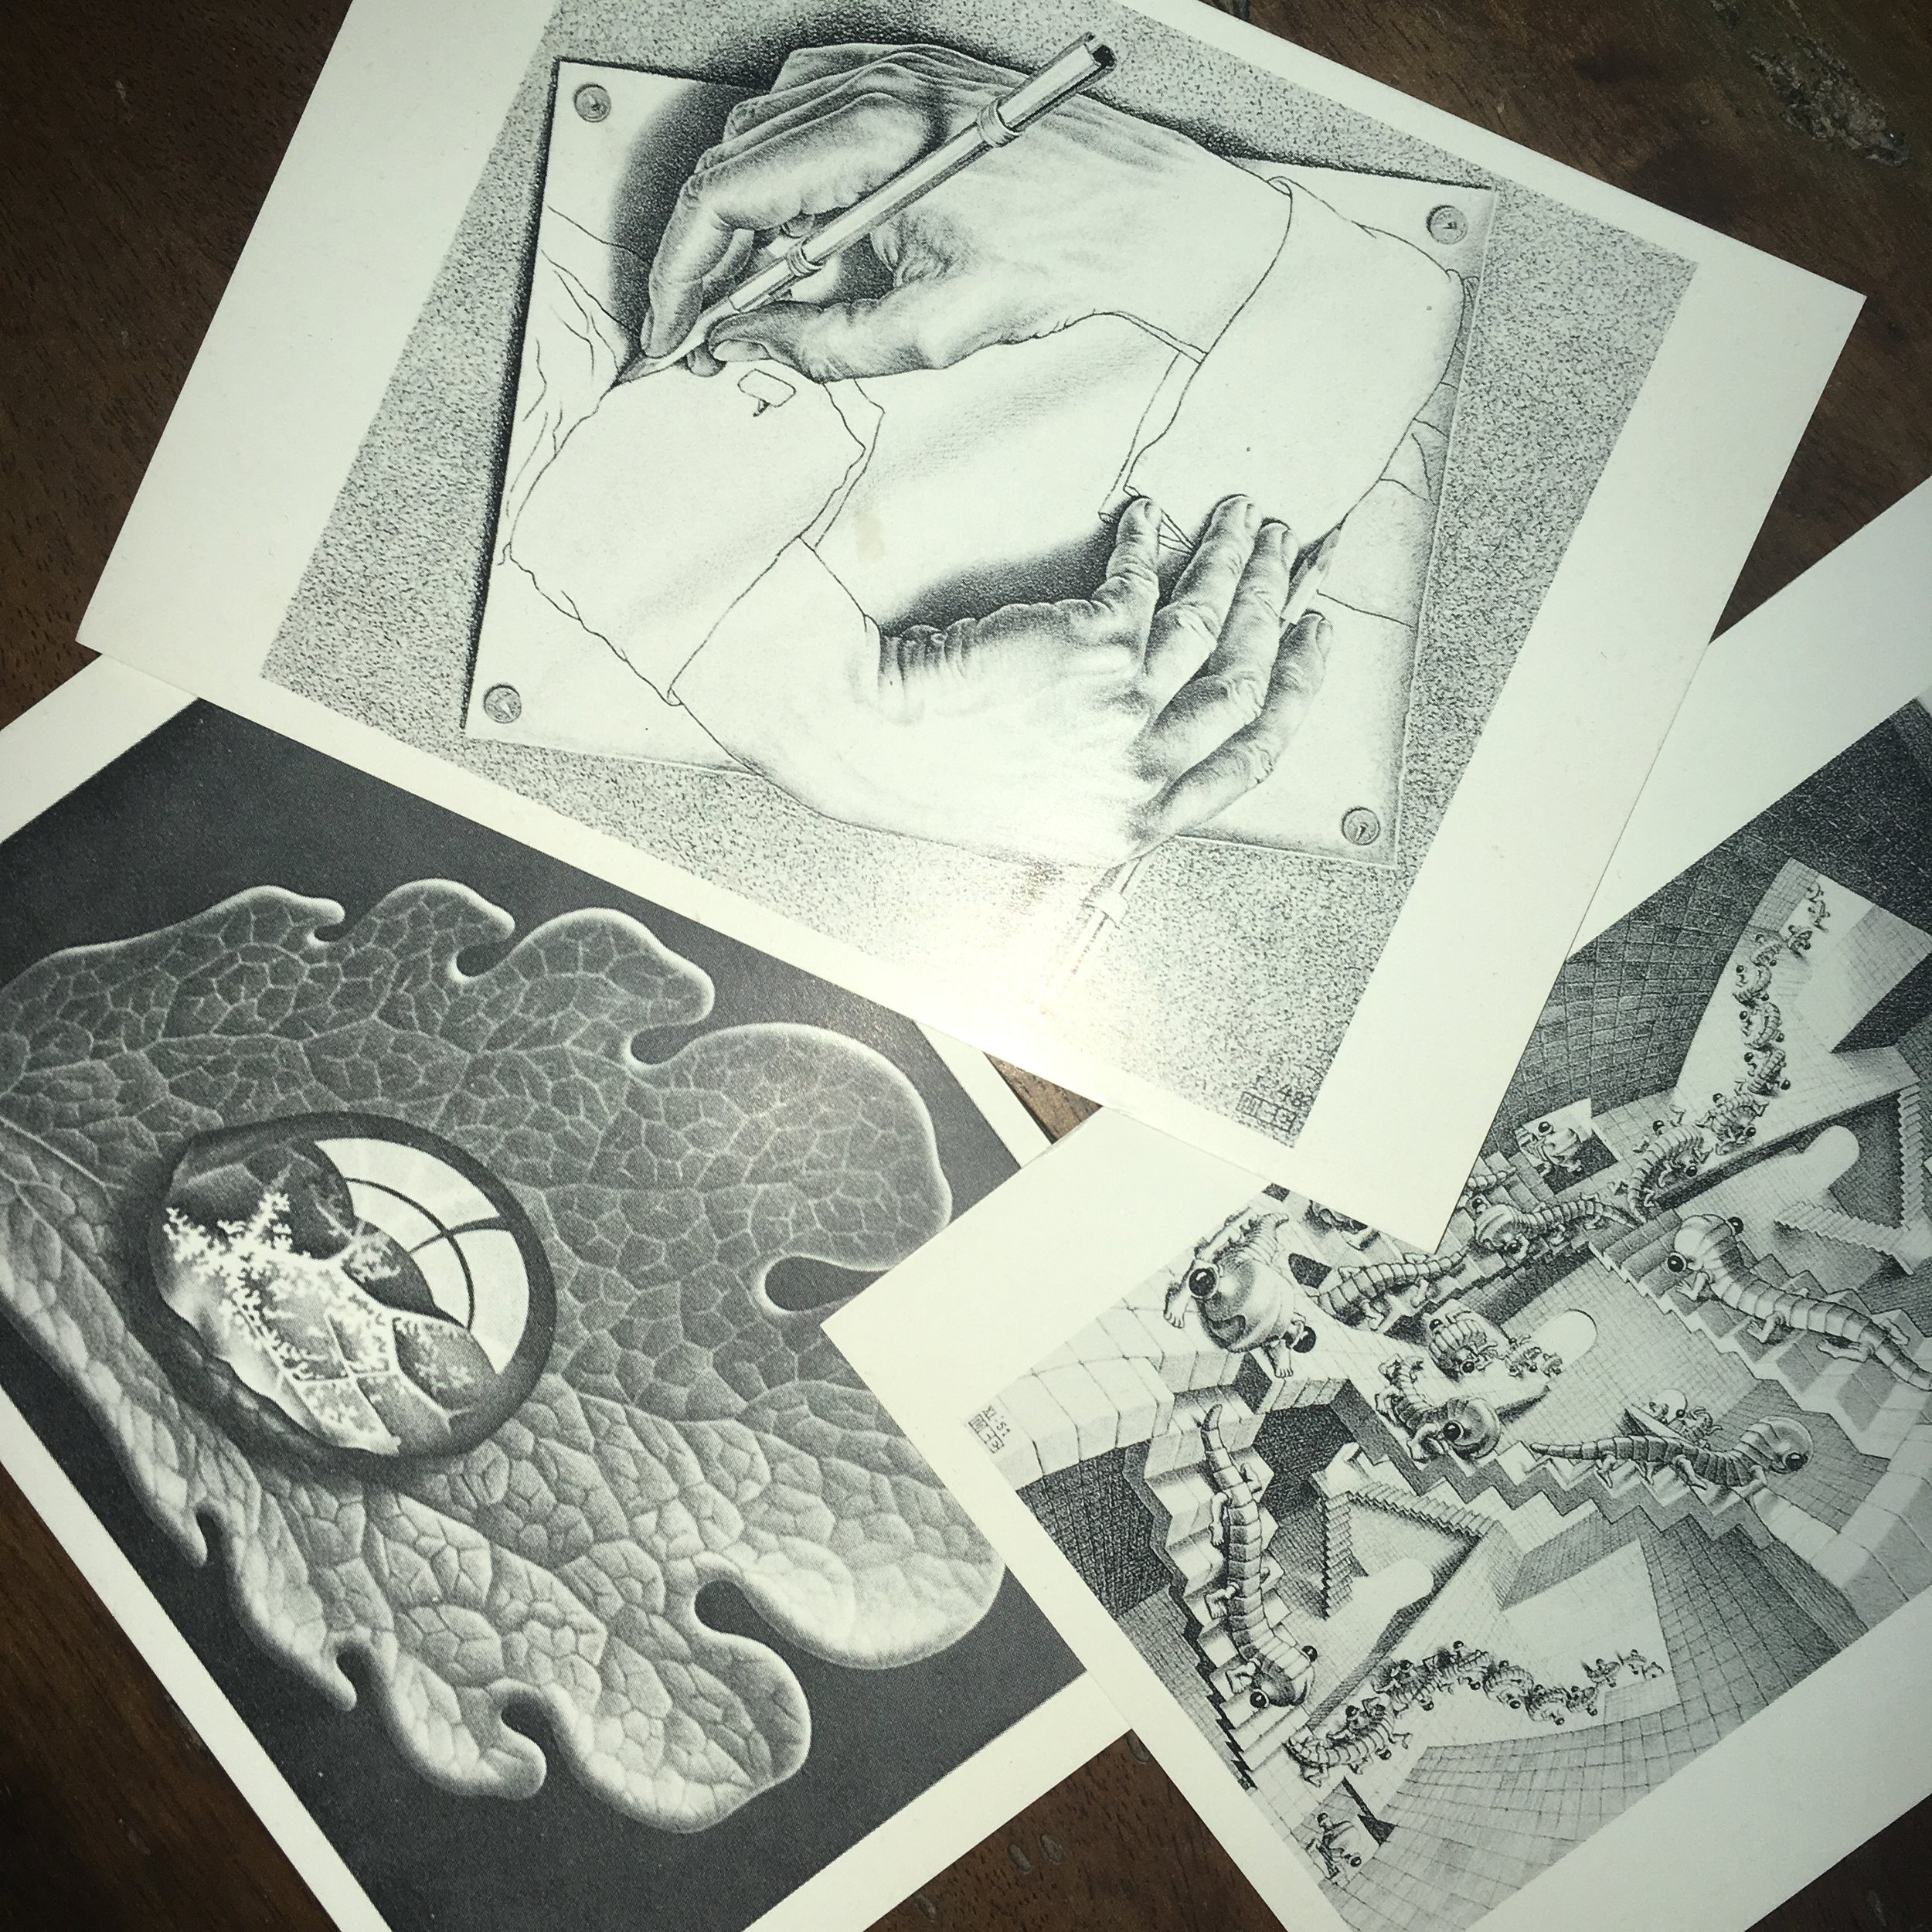 Photograph by author. Postcards of works by M.C. Escher.